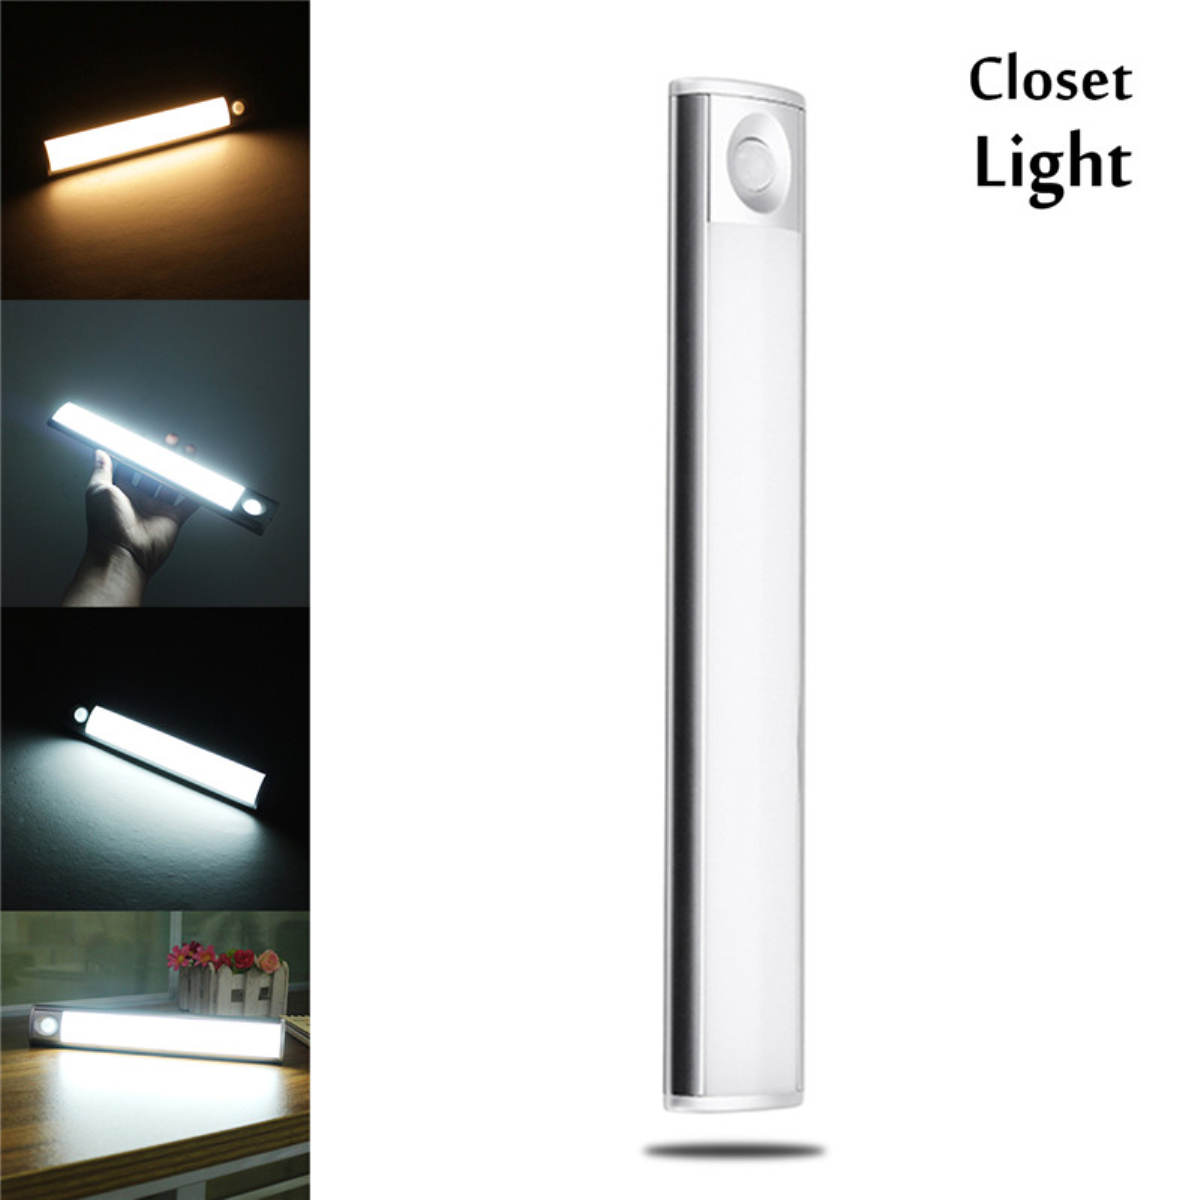 33 LEDs Rechargeable Motion Sensor Night Light LED Closet Light for Kitchen Cabinet Stairs Wardrobe Bookcase Lights